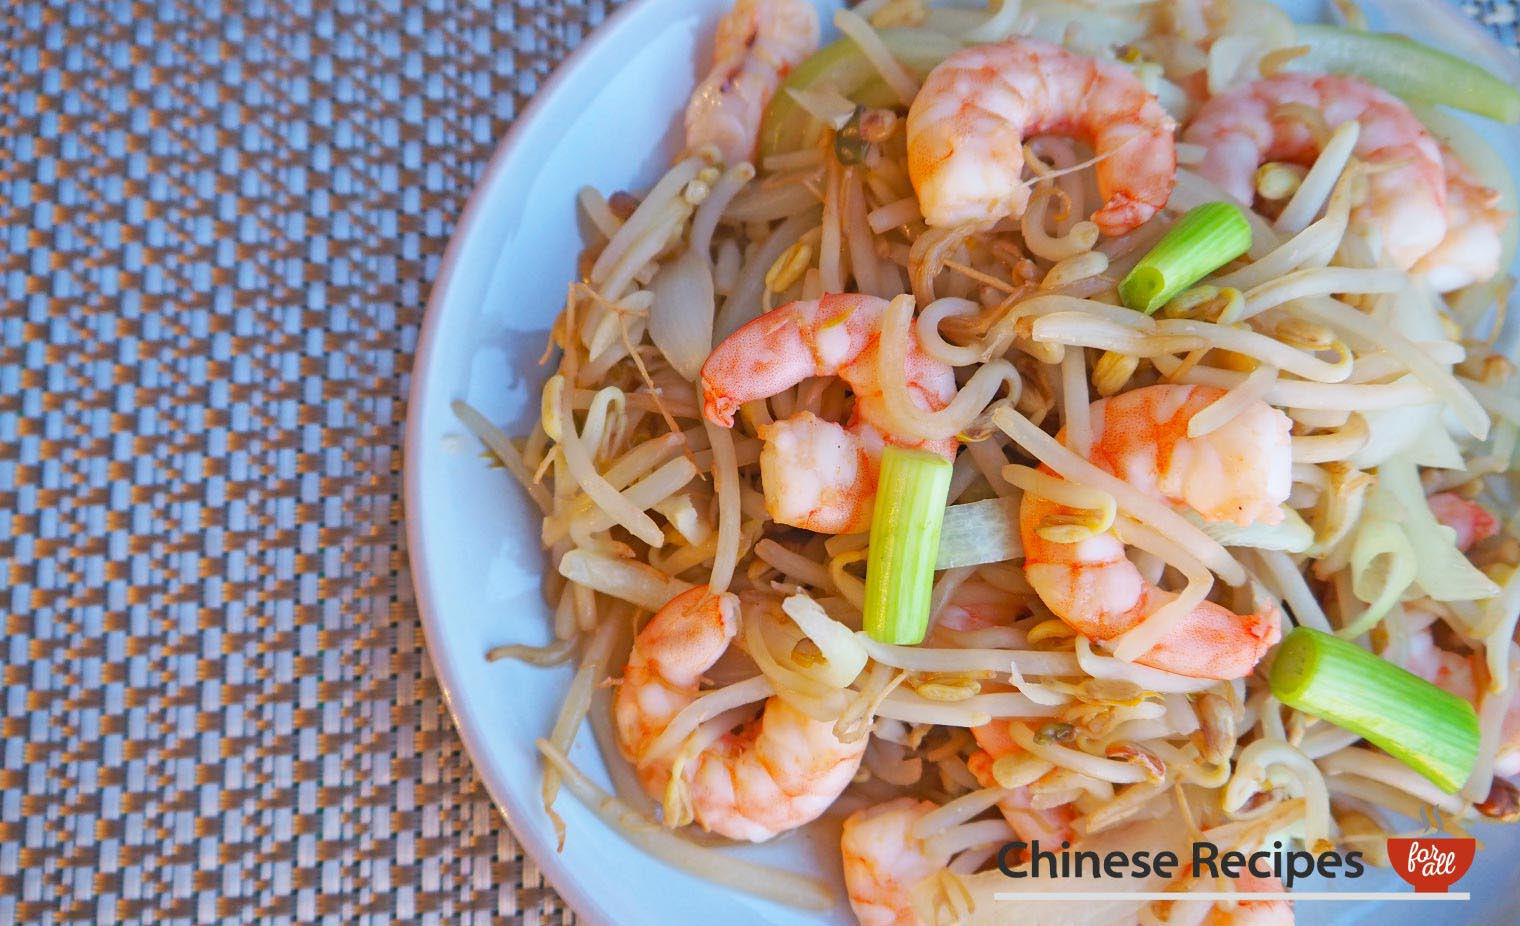 King Prawn Chop Suey - Chinese Recipes For All